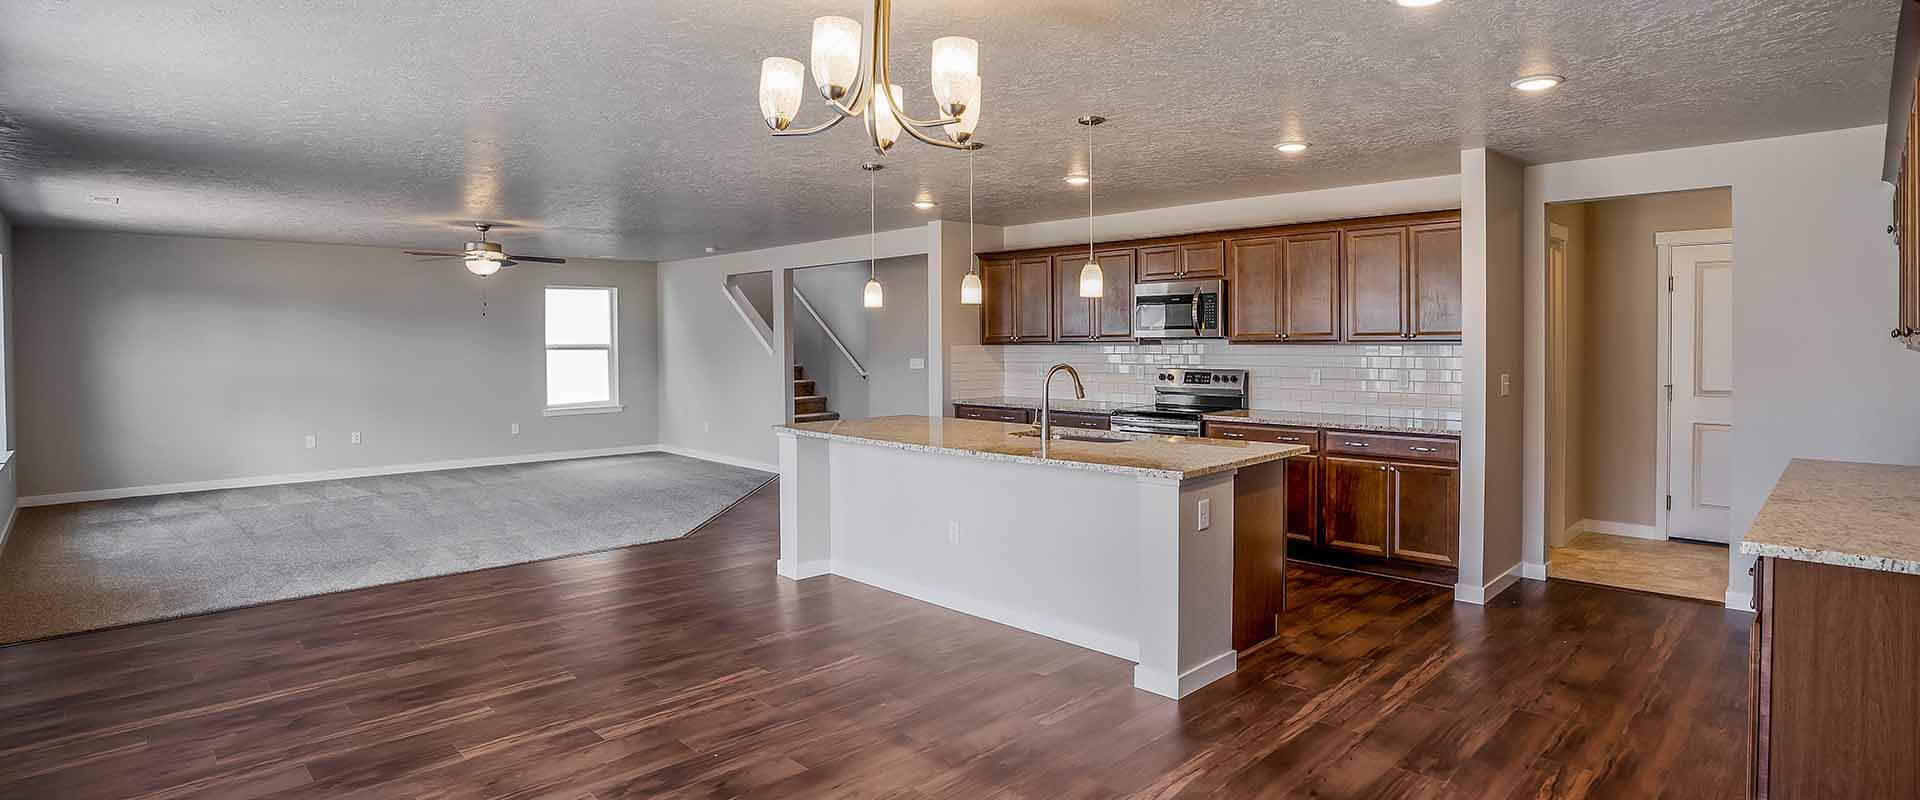 Cedar_Hubble_Homes_New_Homes_Boise_0002_Charter Pointe Cedar 7529 Foremast -6 Kitchen Great Room.jpg